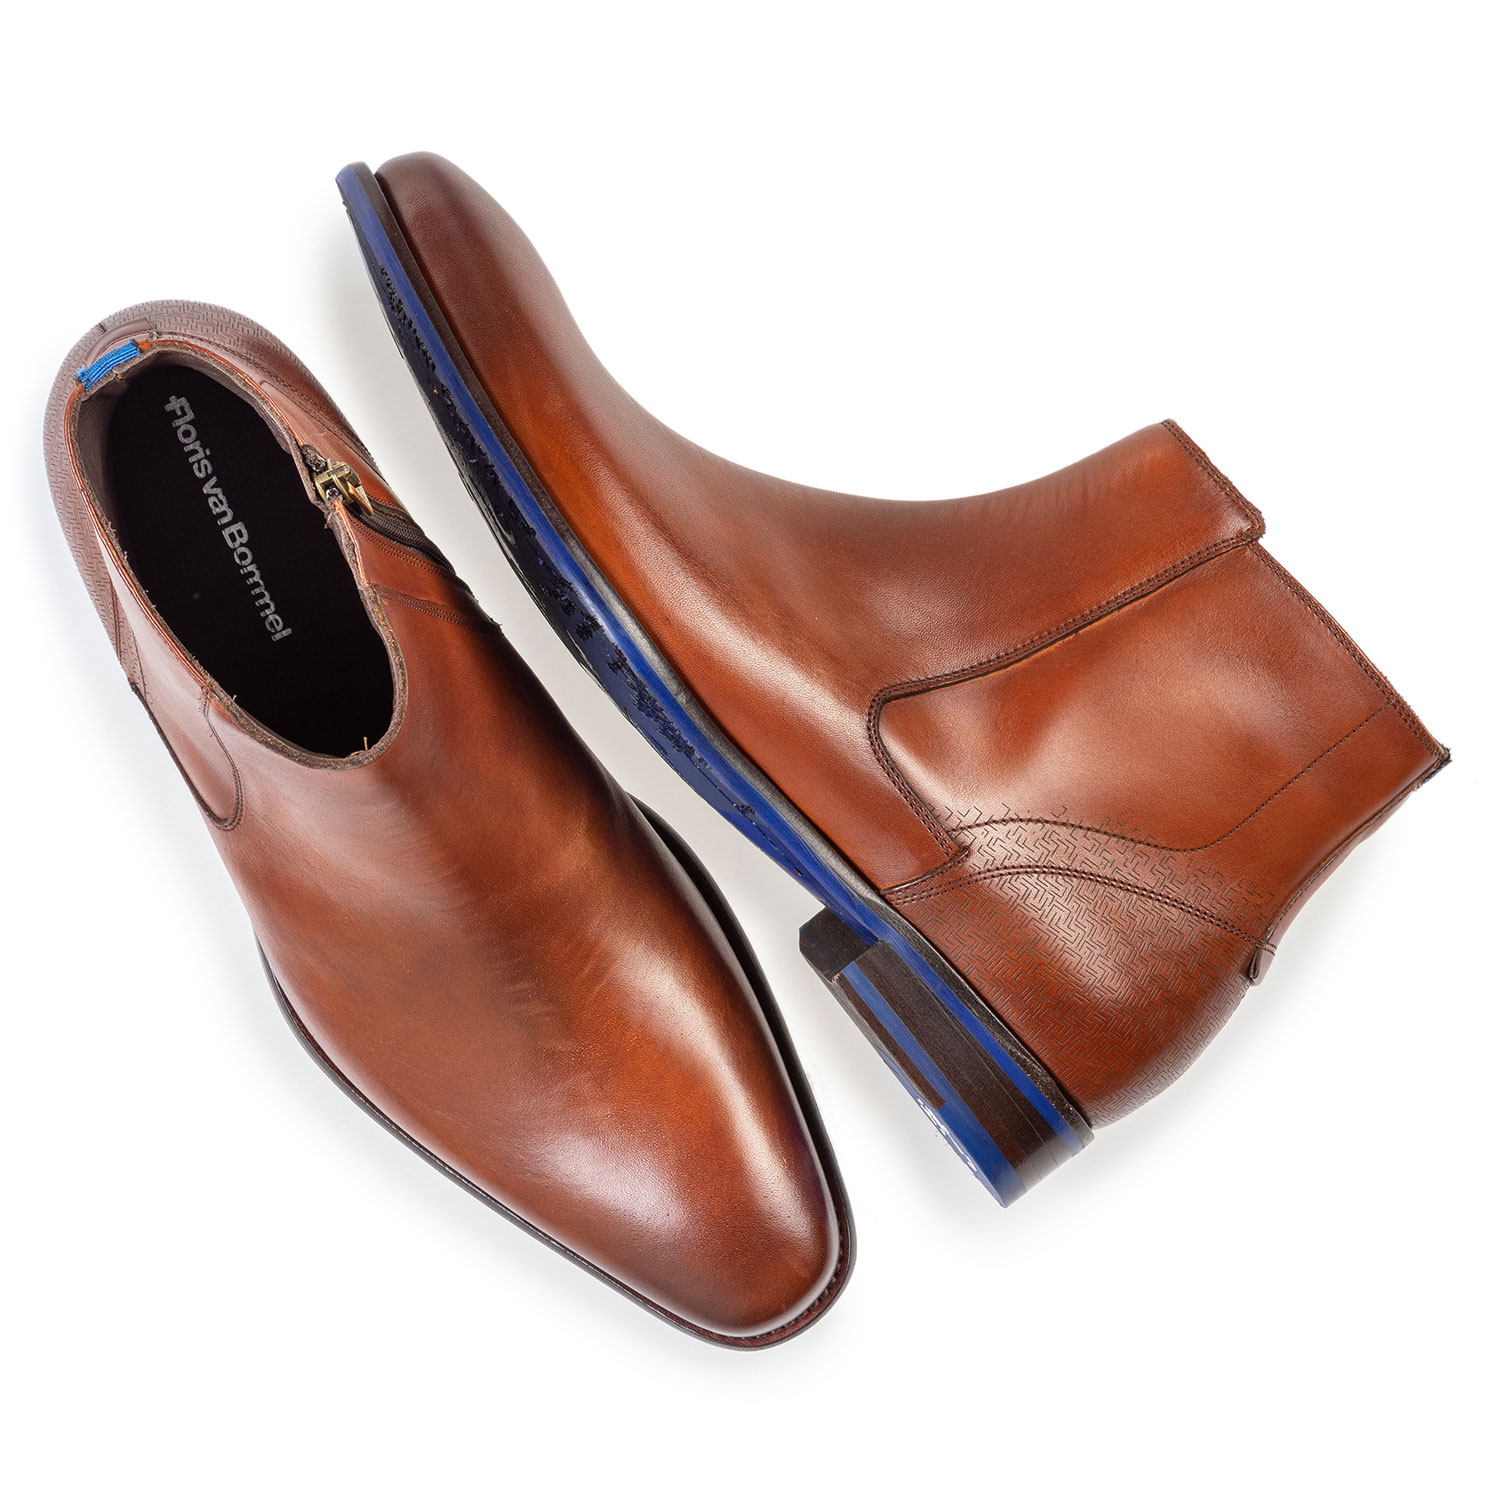 20131/00 - Chelsea boot cognac calf leather